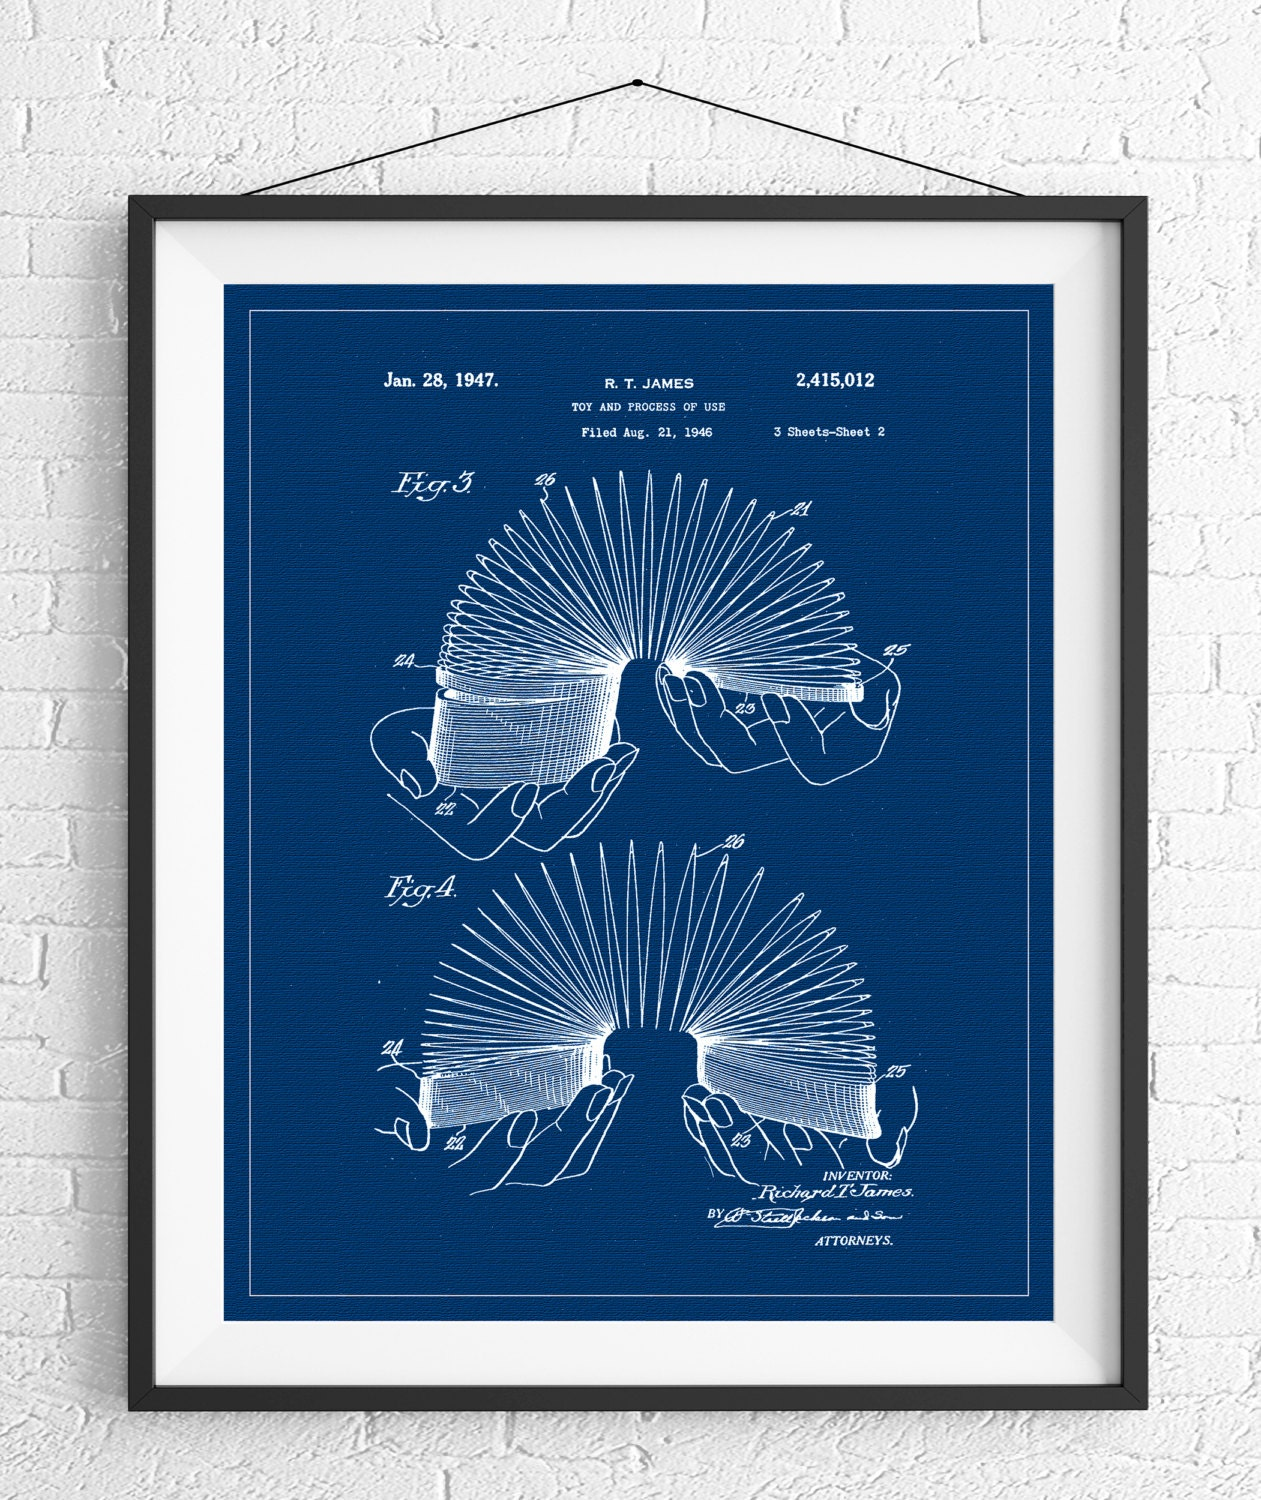 Slinky patent print game room art toy art blueprint vintage slinky patent print game room art toy art blueprint vintage patent poster geek gifts nerd gifts office art kids room boys room malvernweather Image collections